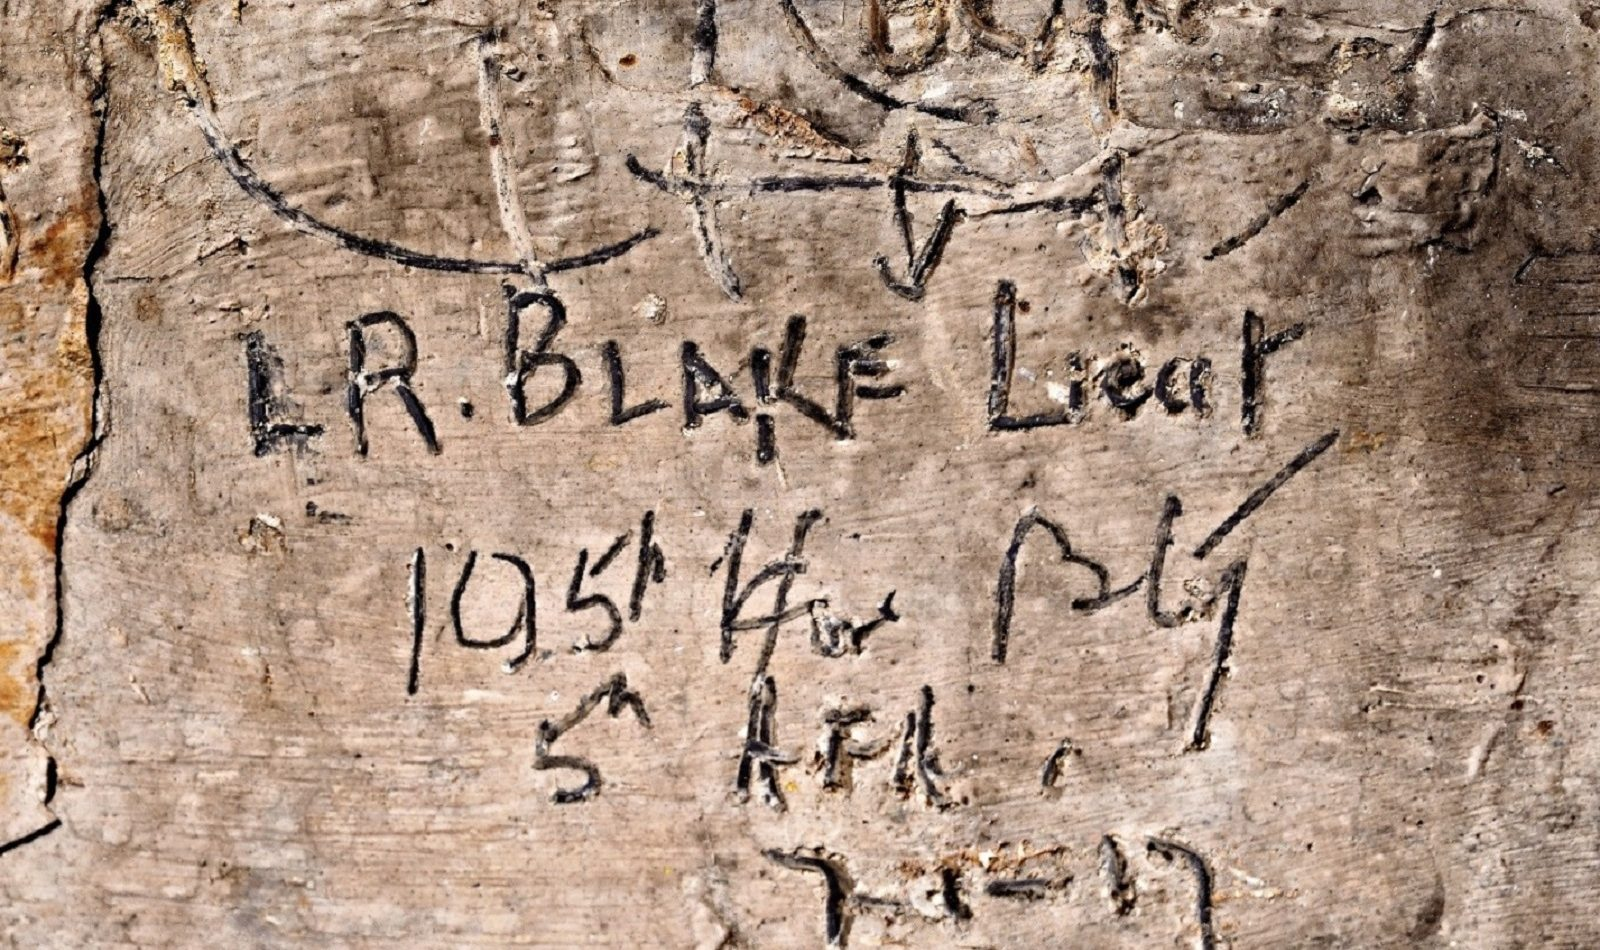 An inscription by Lieutenant Leslie Blake in 1917